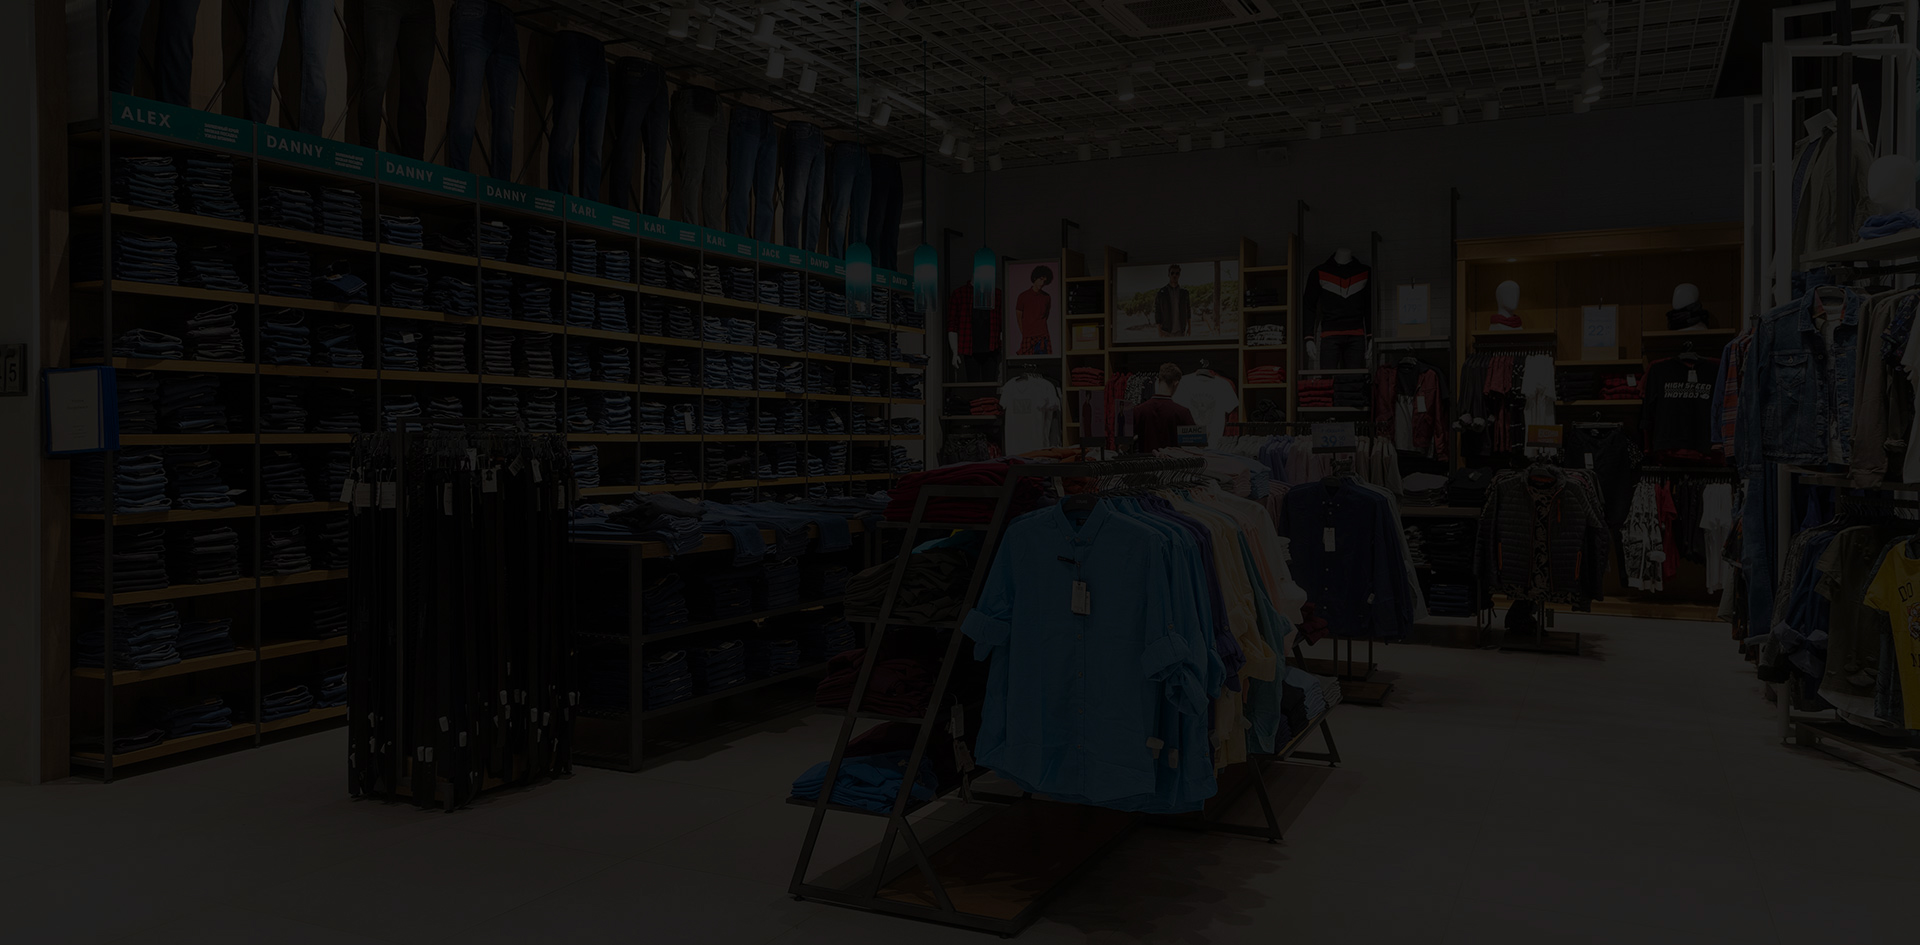 oracle NetSuite erp for retail